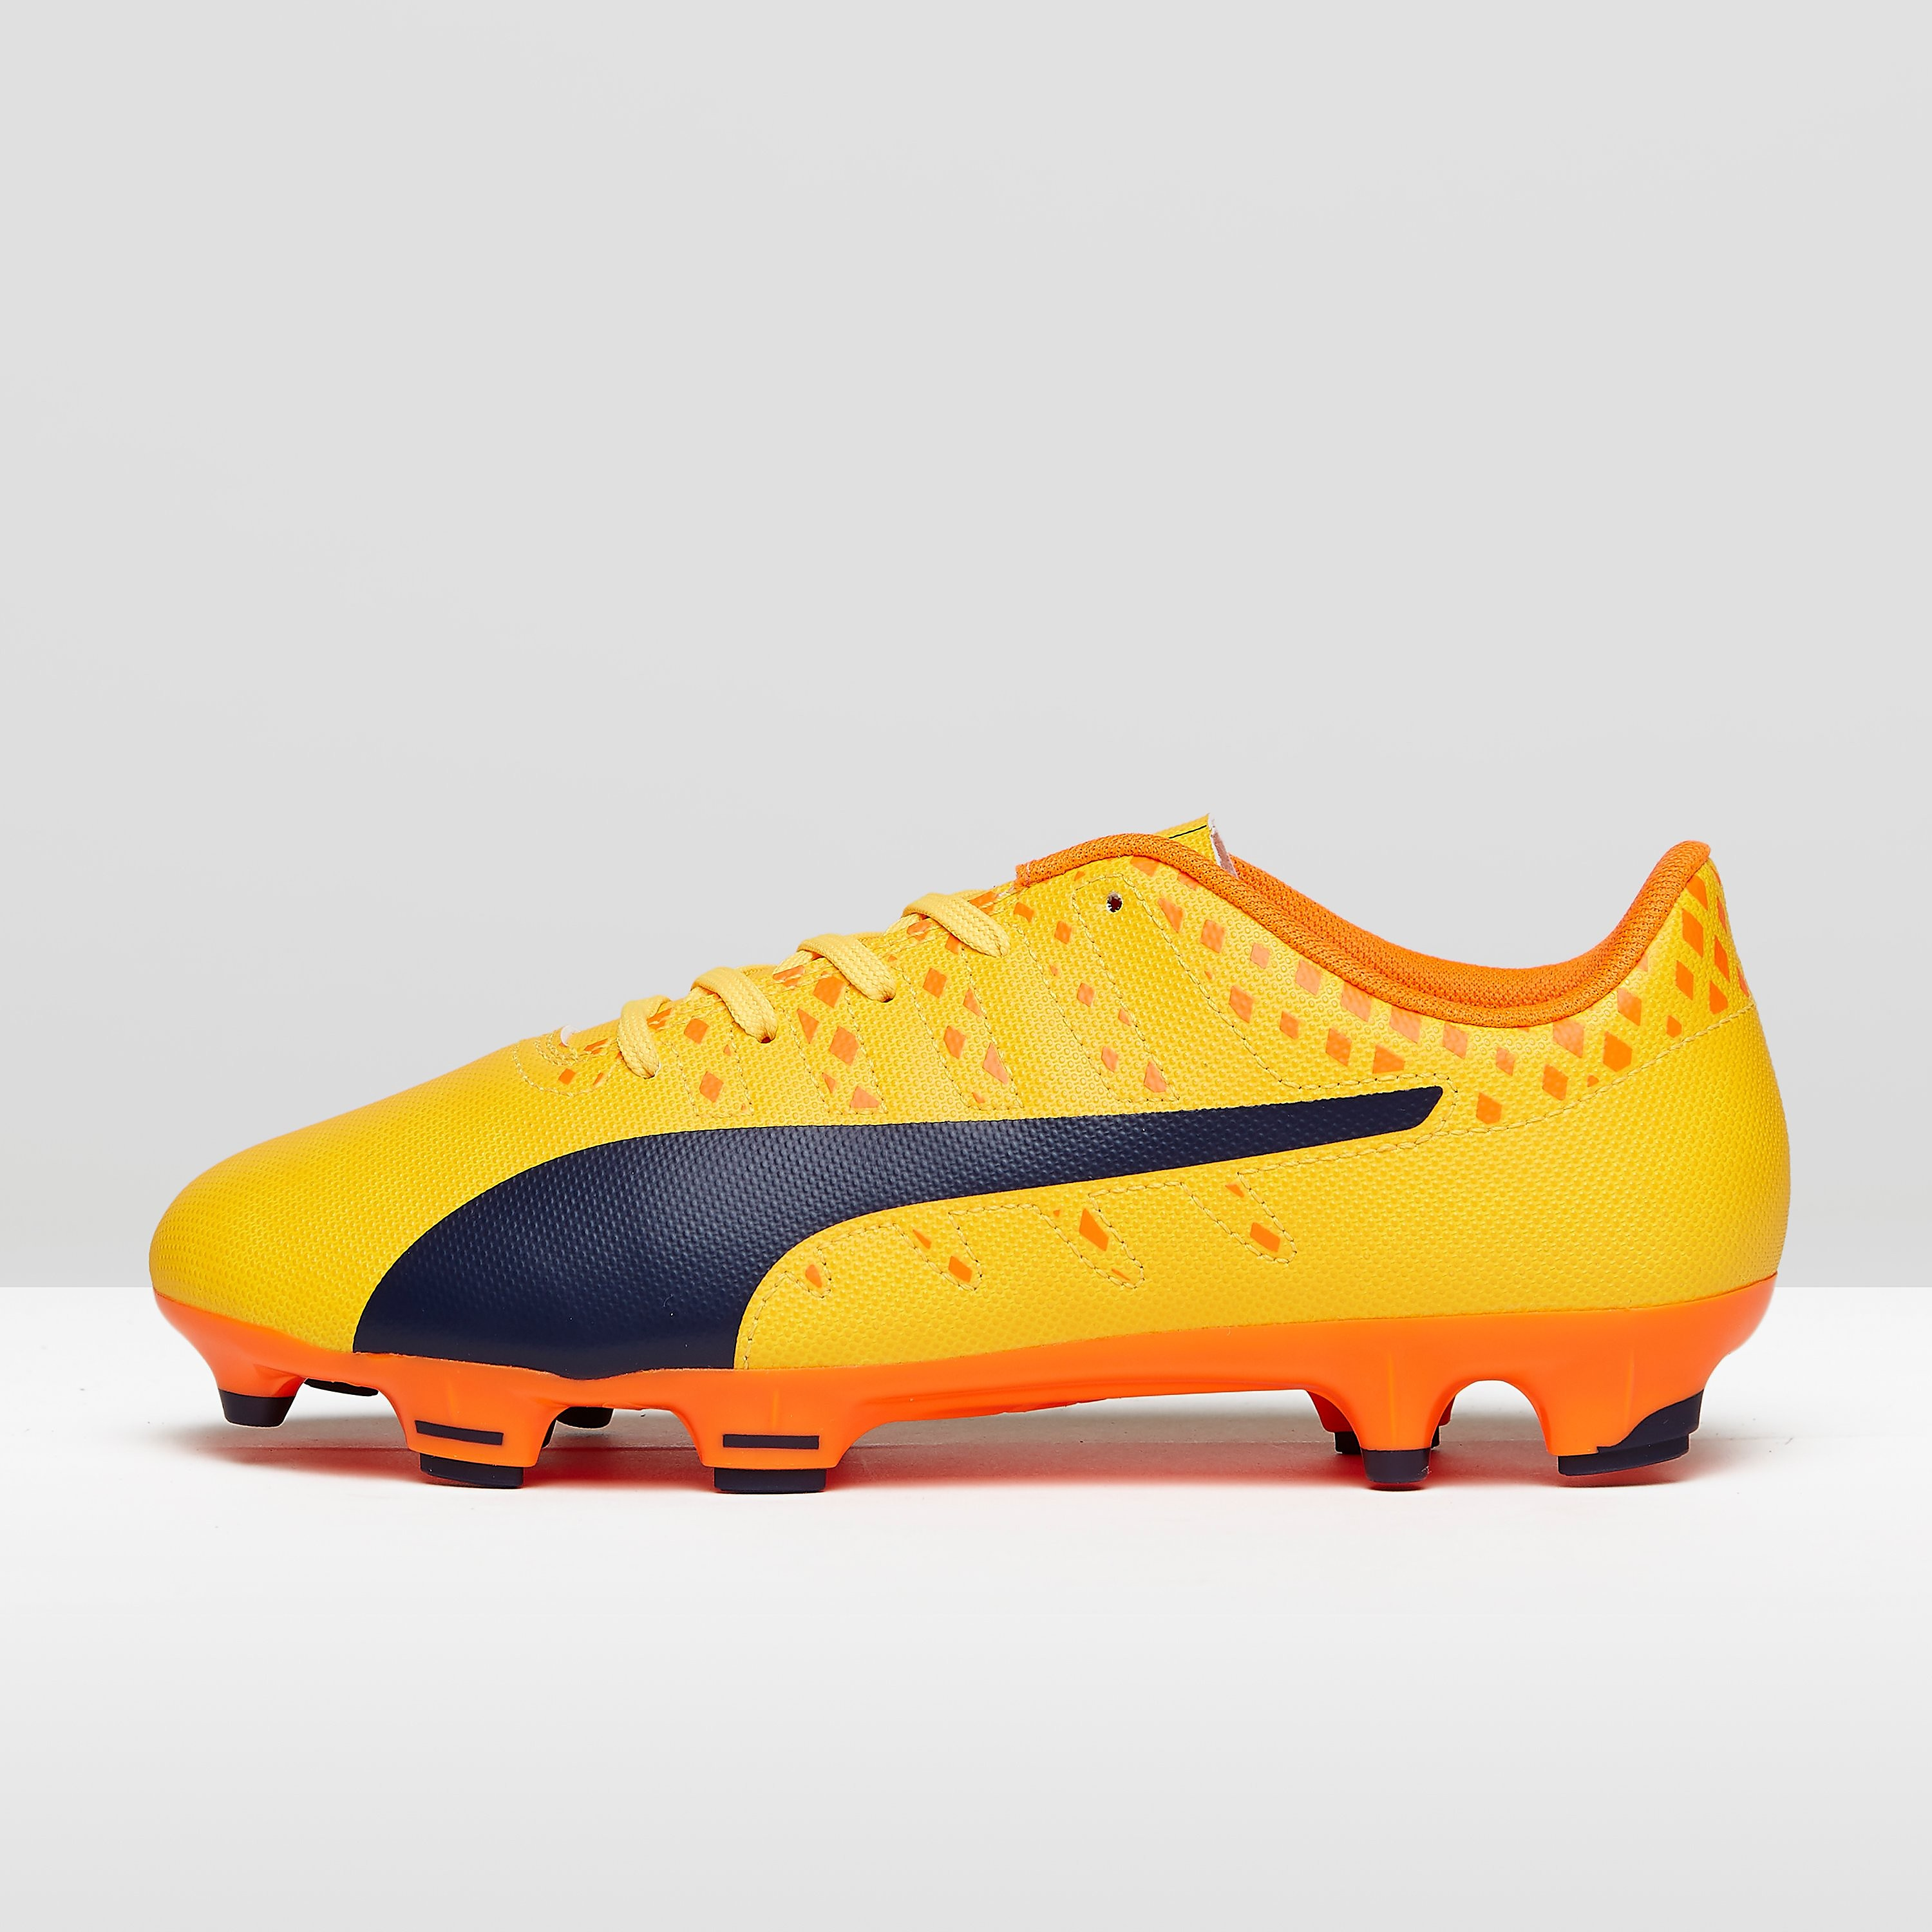 PUMA EVOPOWER VIGOR 4 FG JR